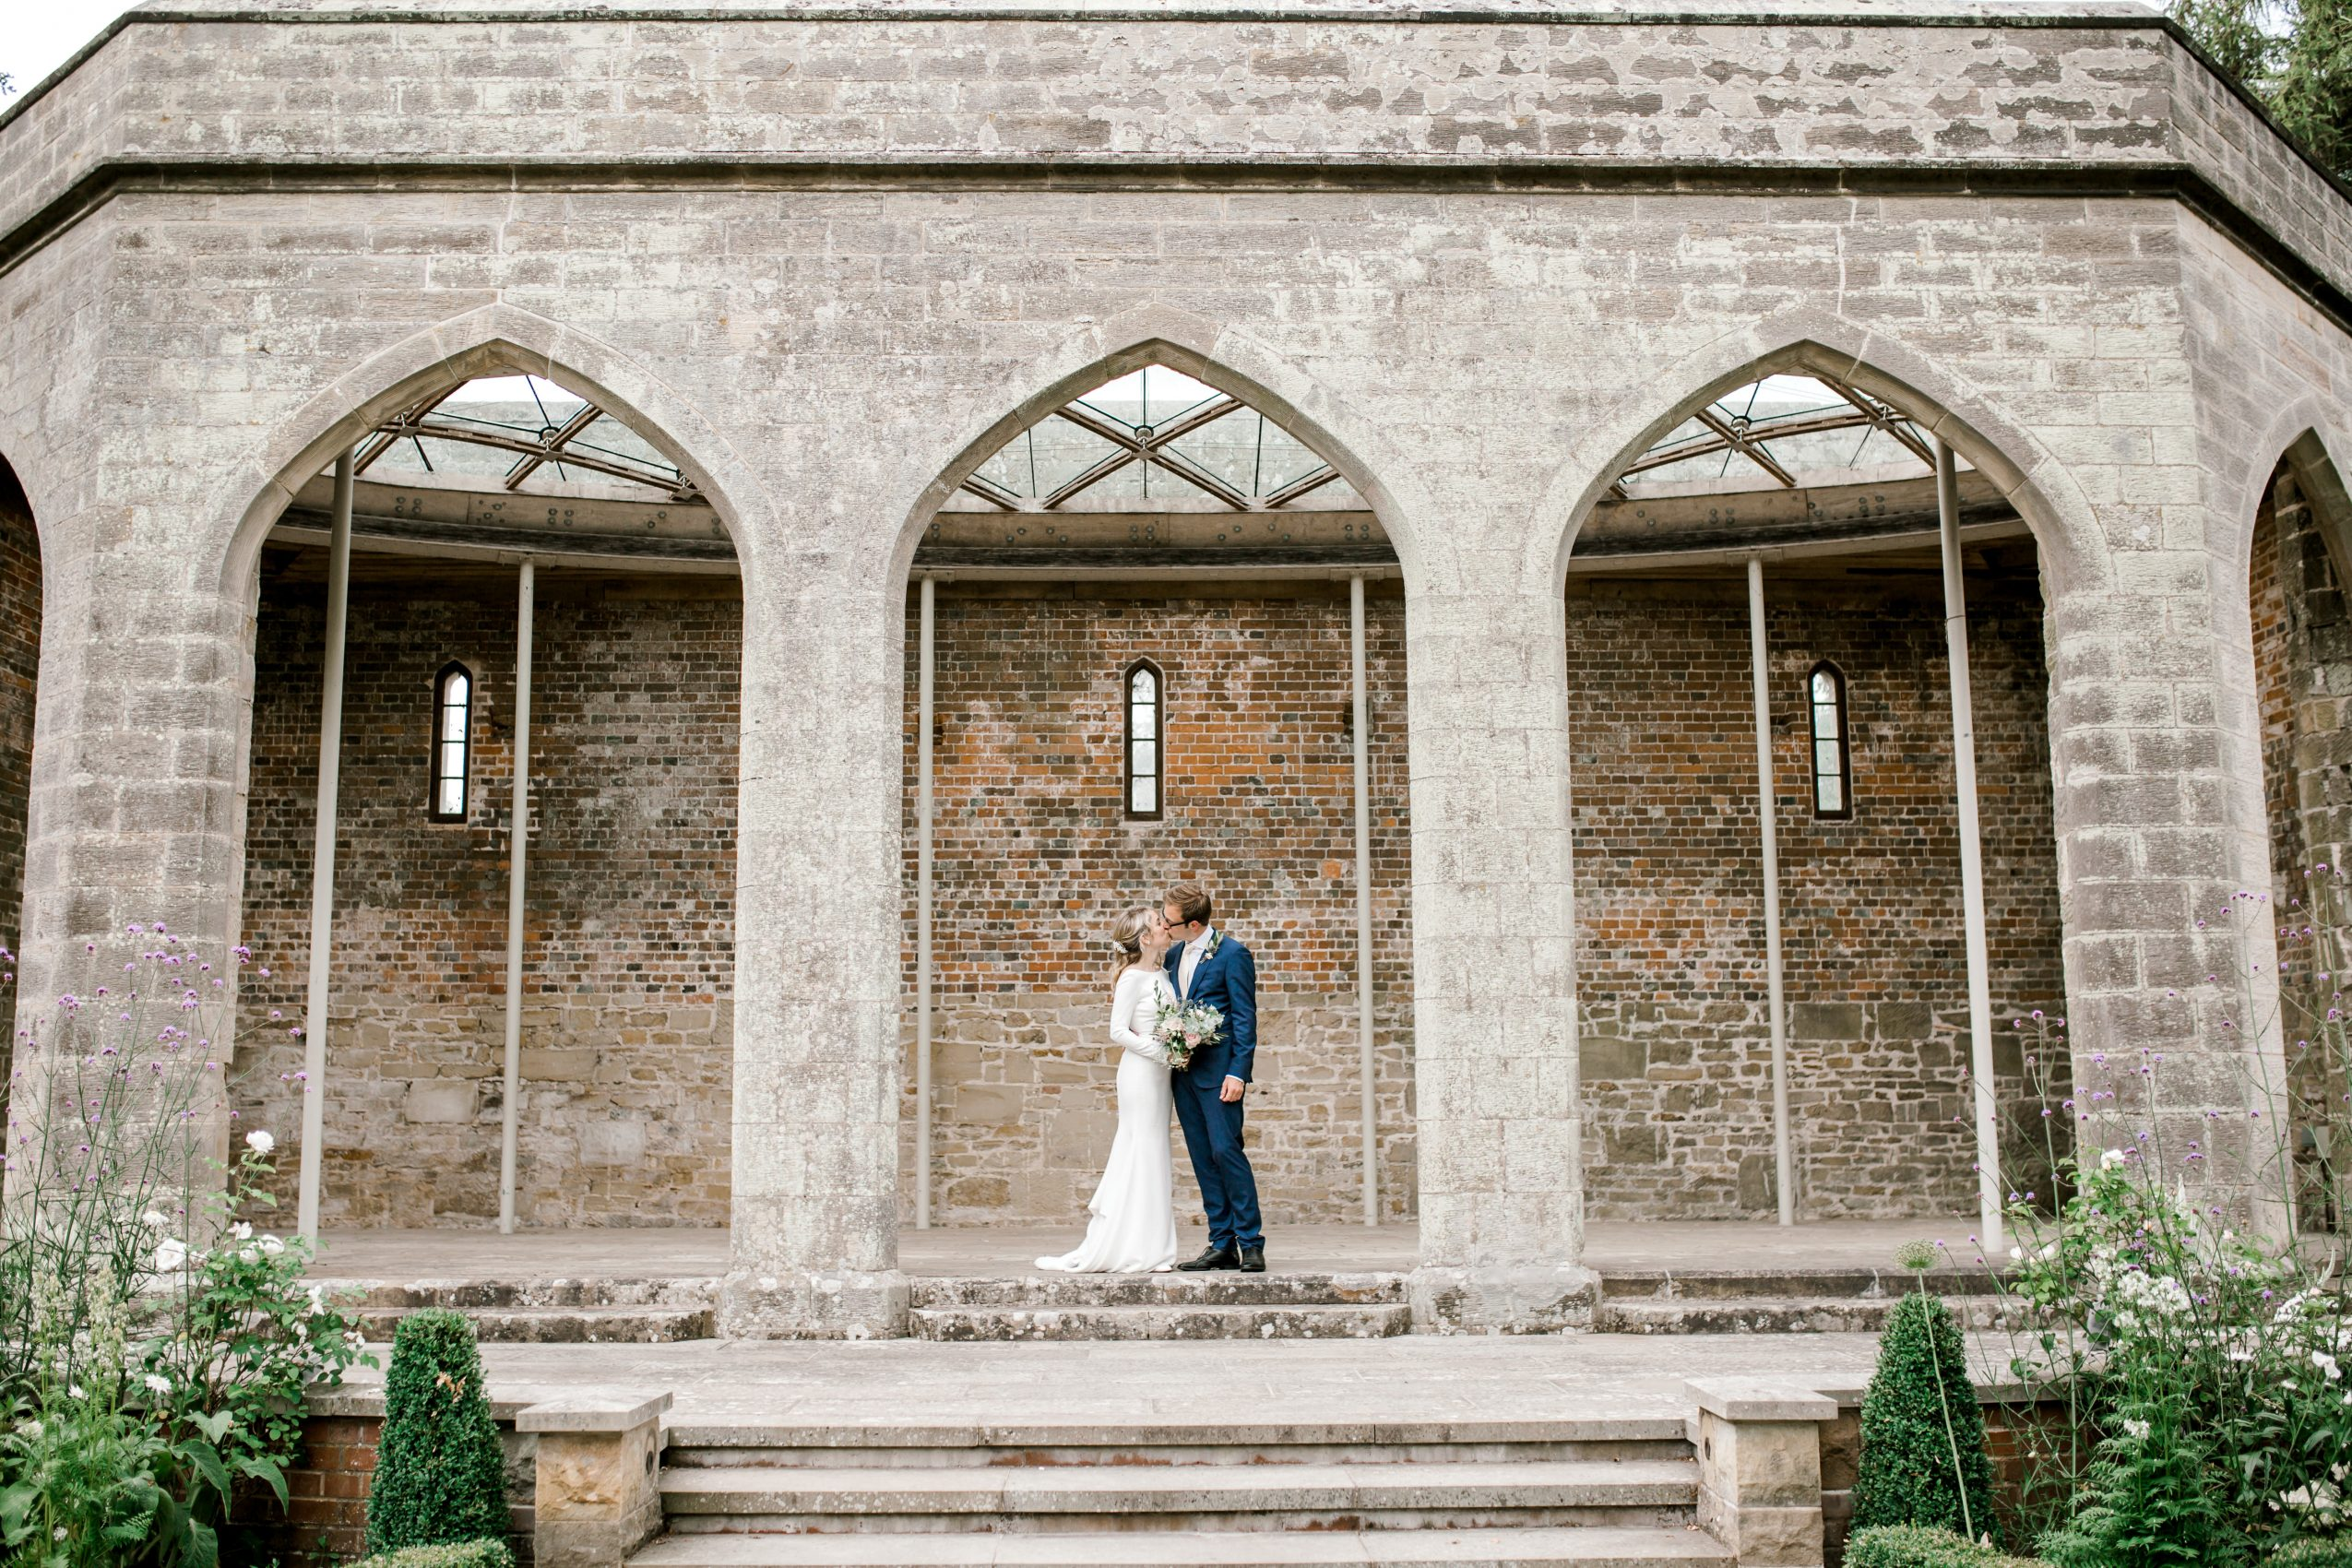 Chiddingstone Castle Wedding - Mikaella Bridal 2105 - Sam Areman Photo-4705